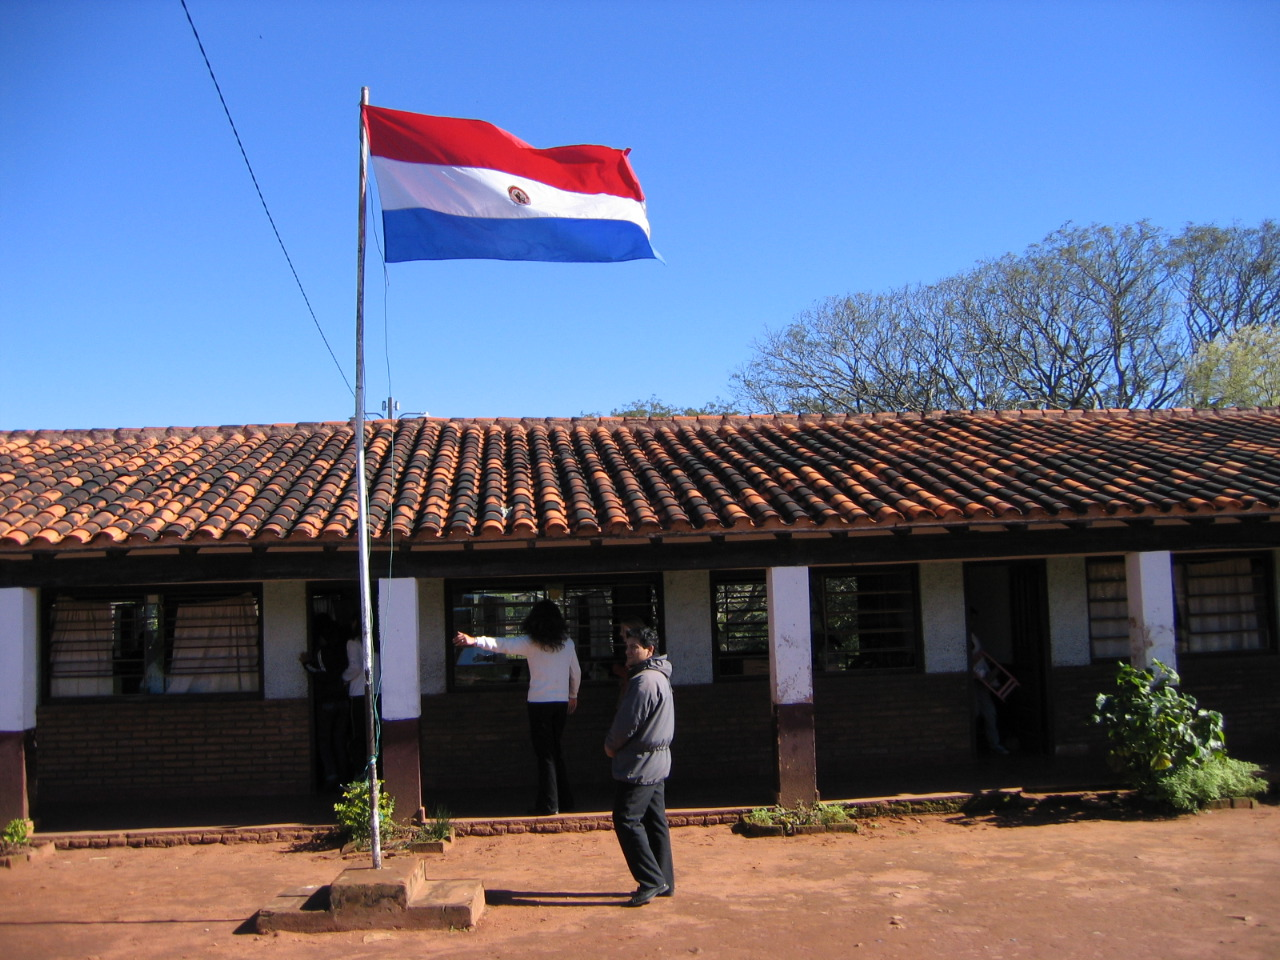 Paraguay May Be Next to Court Crypto Businesses With July Bill